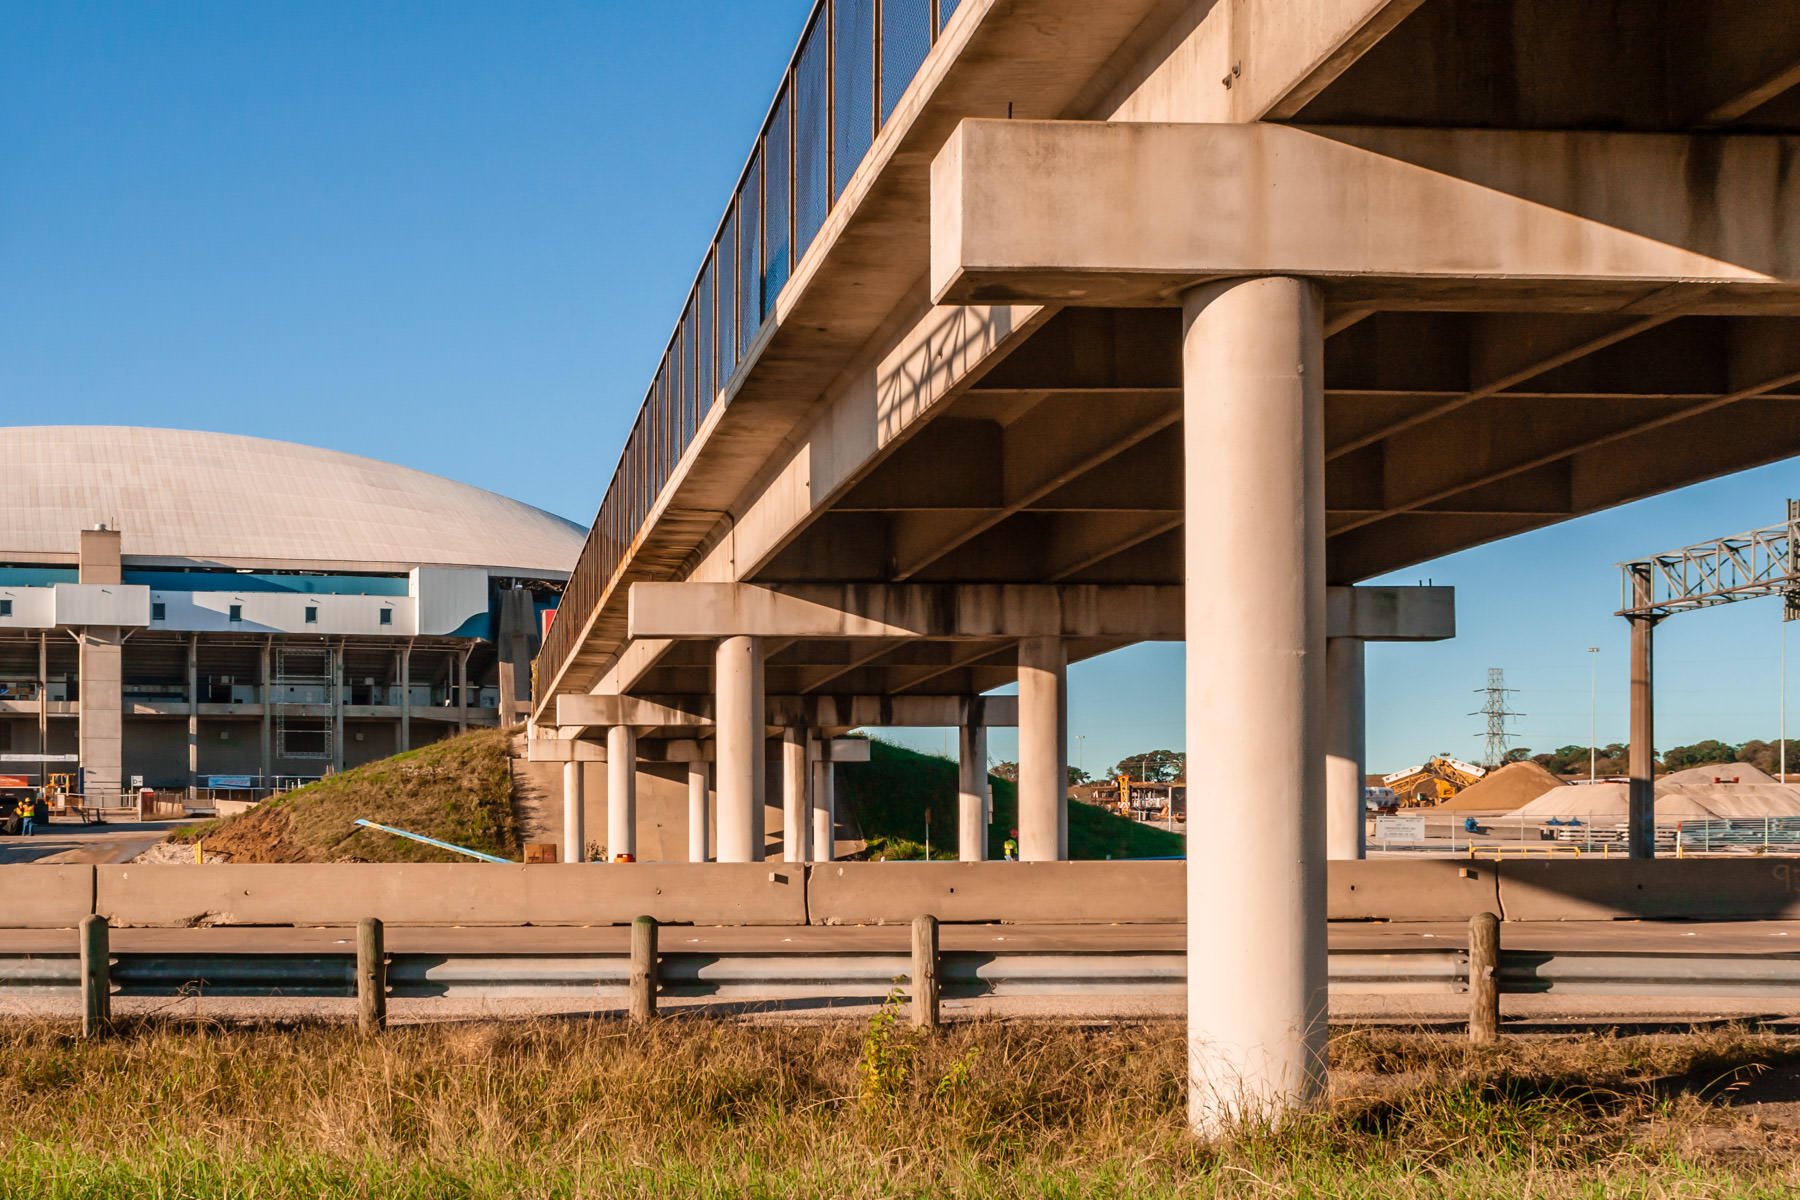 This pedestrian bridge crosses a busy road to the soon-to-be-demolished Texas Stadium.